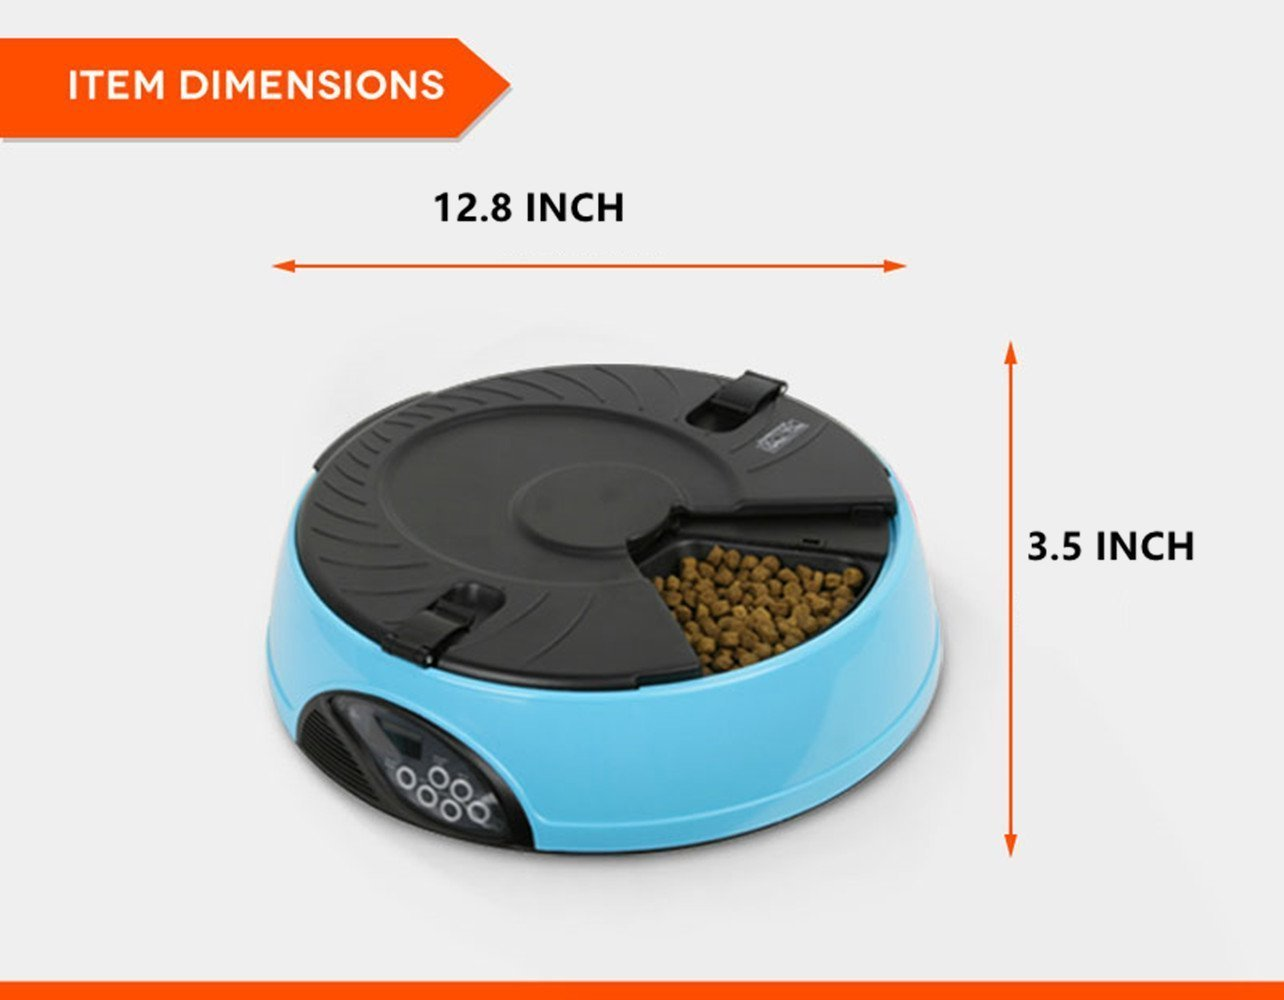 Automatic Pet Feeder PYRUS Pet Feeder Separate Compartments Food Trays Secure Locked Programmed Feeder for Pets (Blue) by PYRUS (Image #2)